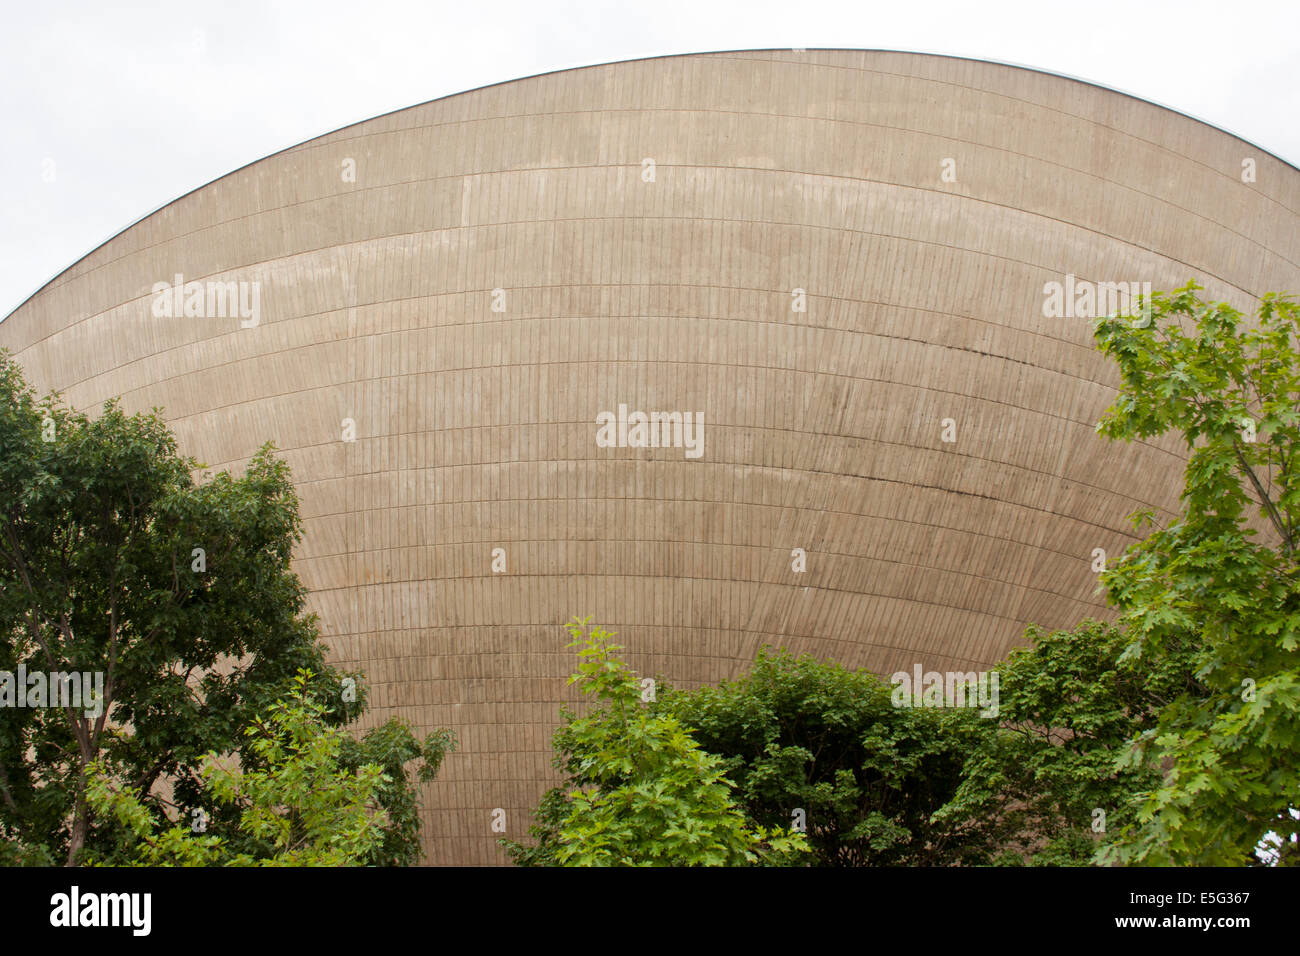 A side view of The Egg at the Empire State Plaza in Albany New York - Stock Image